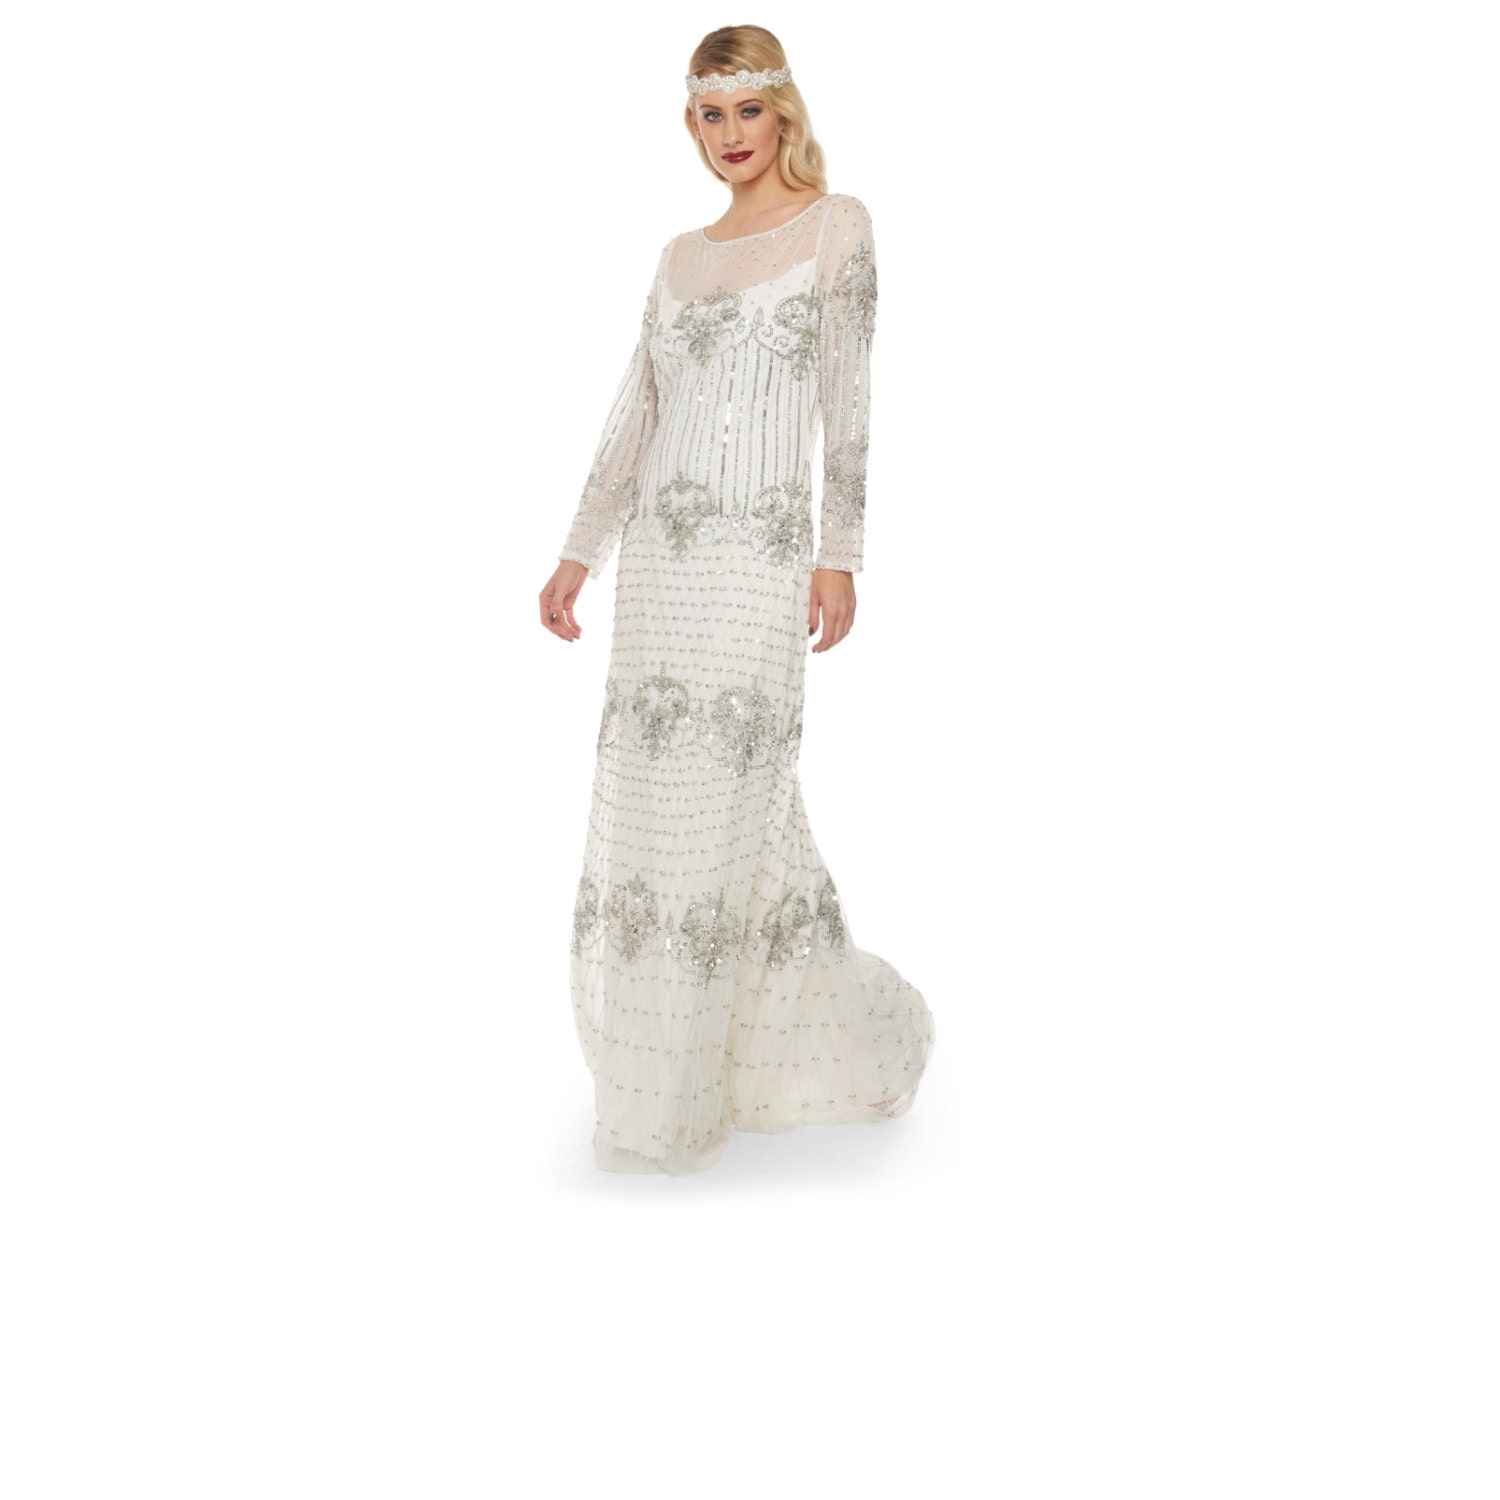 PRE ORDER White Silver Wedding Gown Prom Maxi Dolores Dress with Sleeves 20s inspired Flapper Great Gatsby Art Deco Reception Beach Wedding